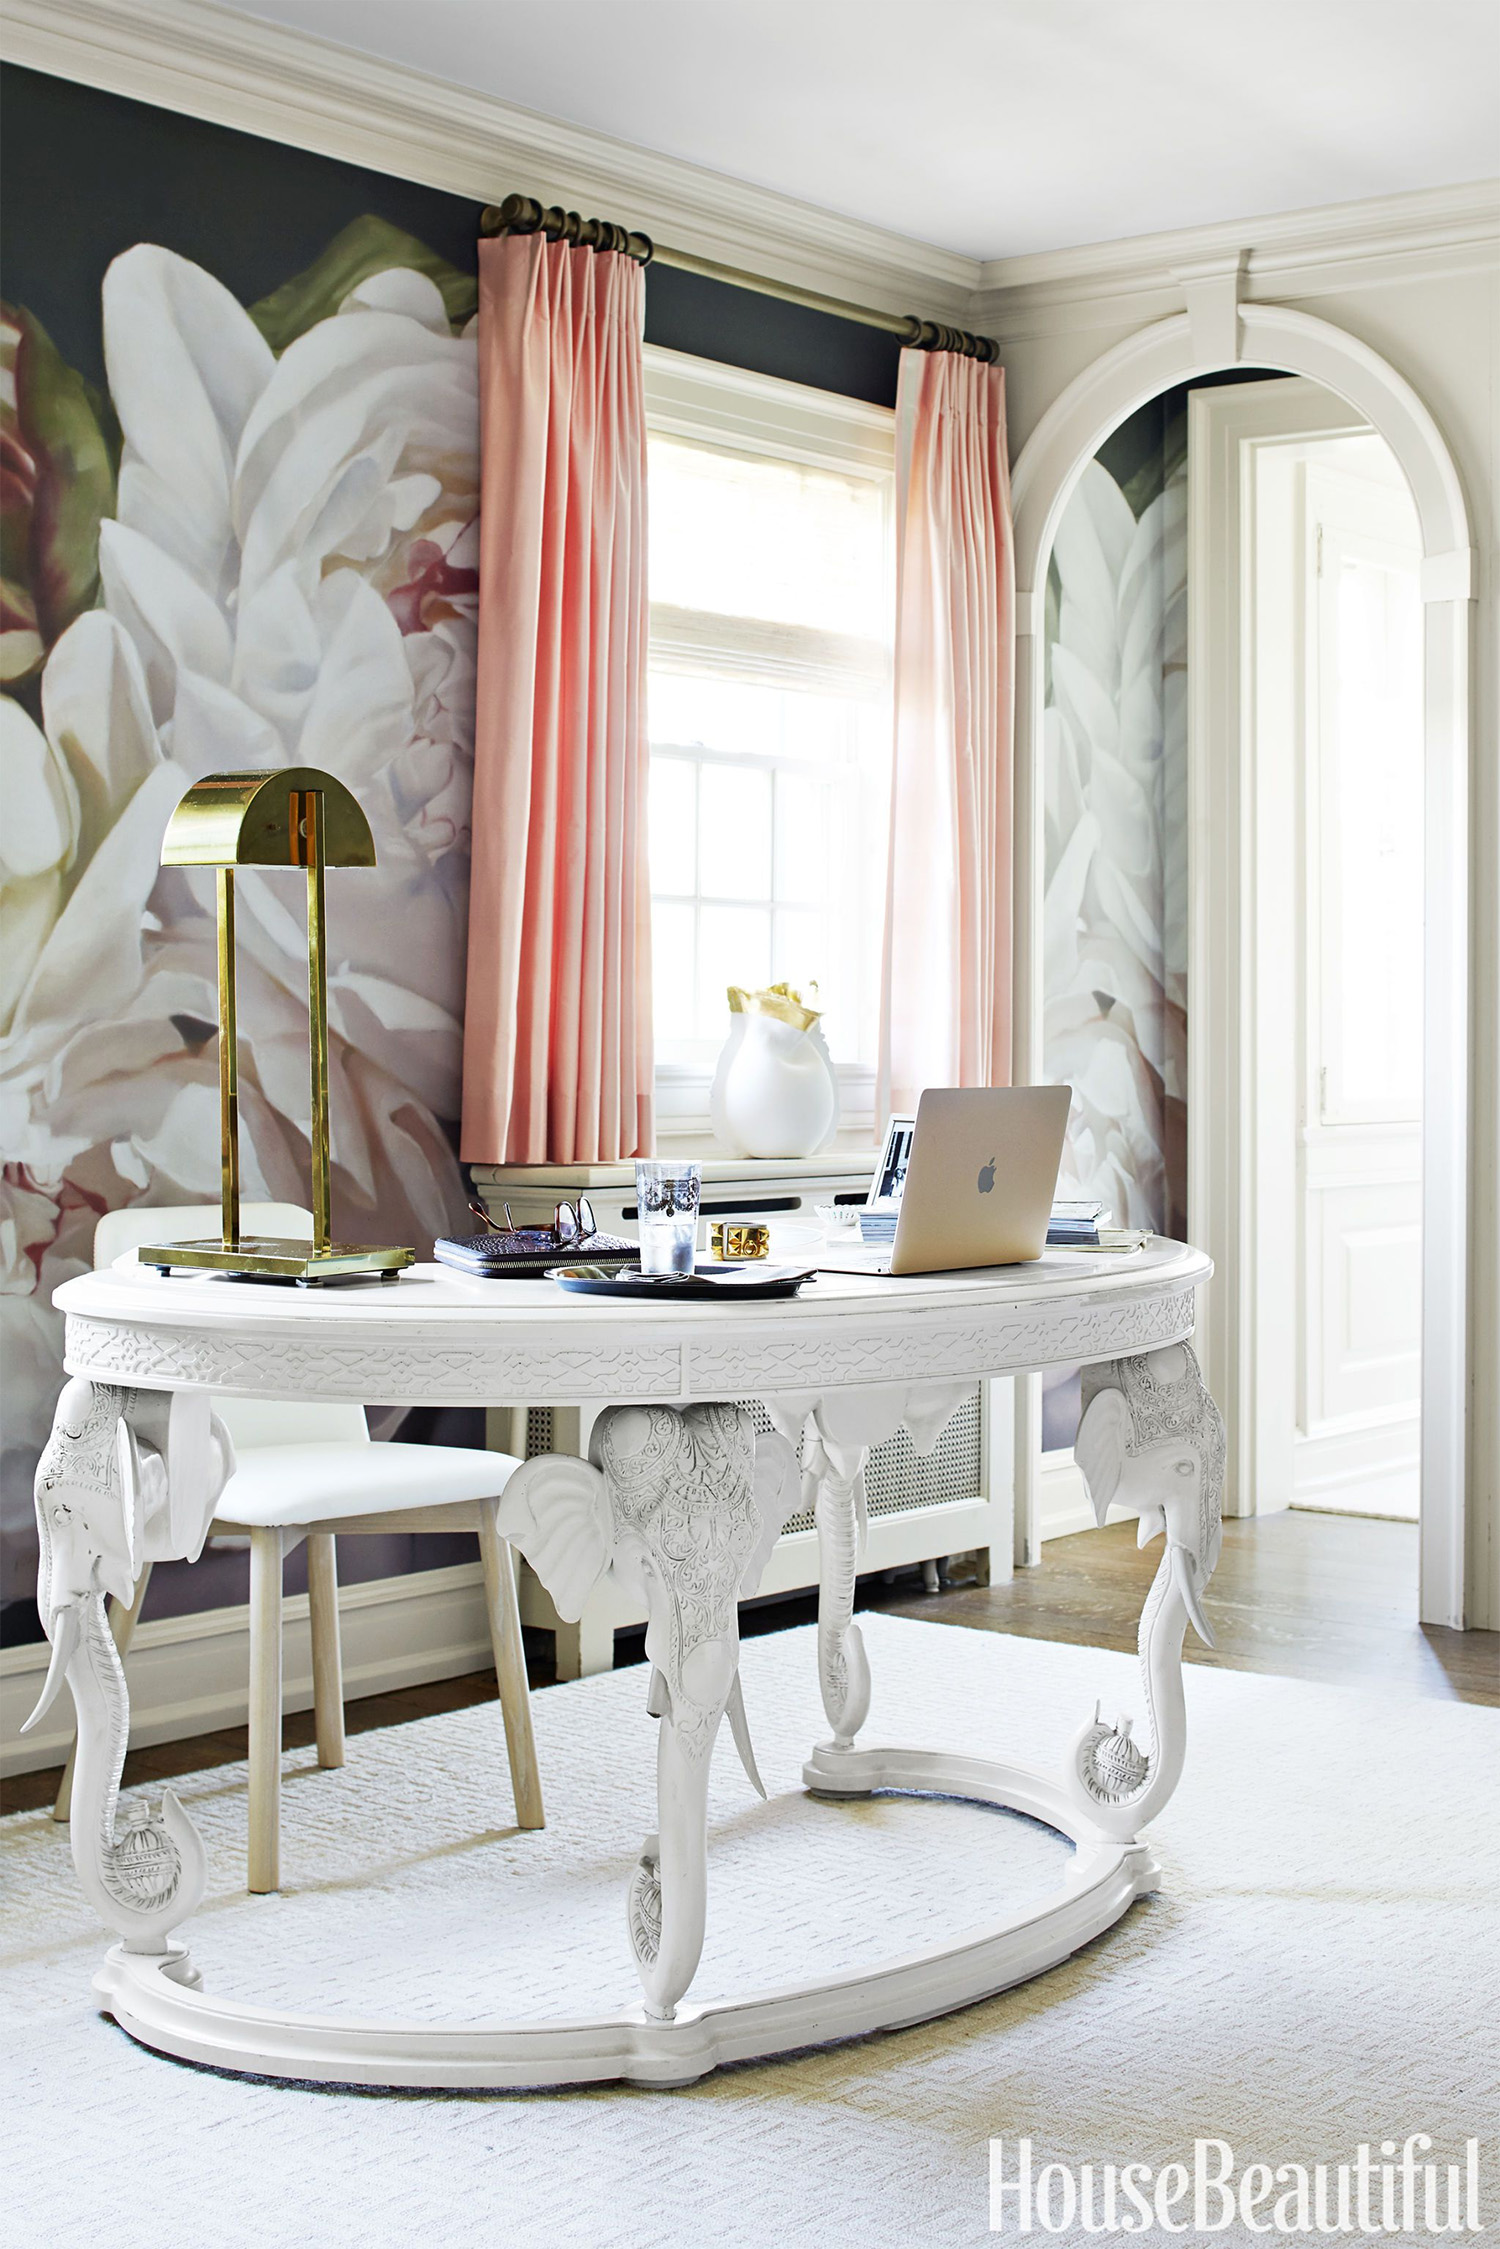 The master bedroom walls are accented by a custom mural wallcovering of massive peonies by artist Thomas Darnell for Area Environments. The vintage elephant desk is from Again & Again in Dallas, TX.